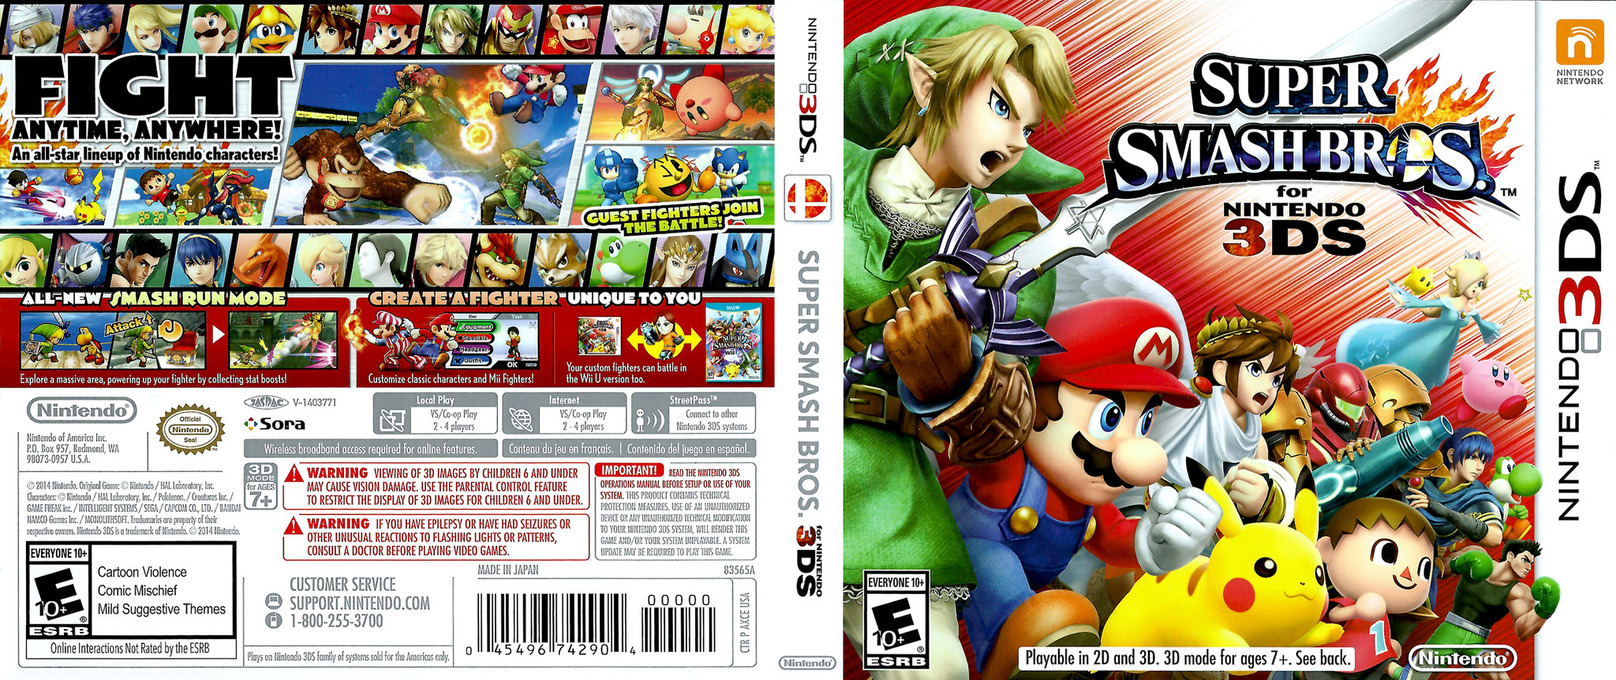 Super Smash Bros. for Nintendo 3DS 3DS coverfullHQ (AXCE)